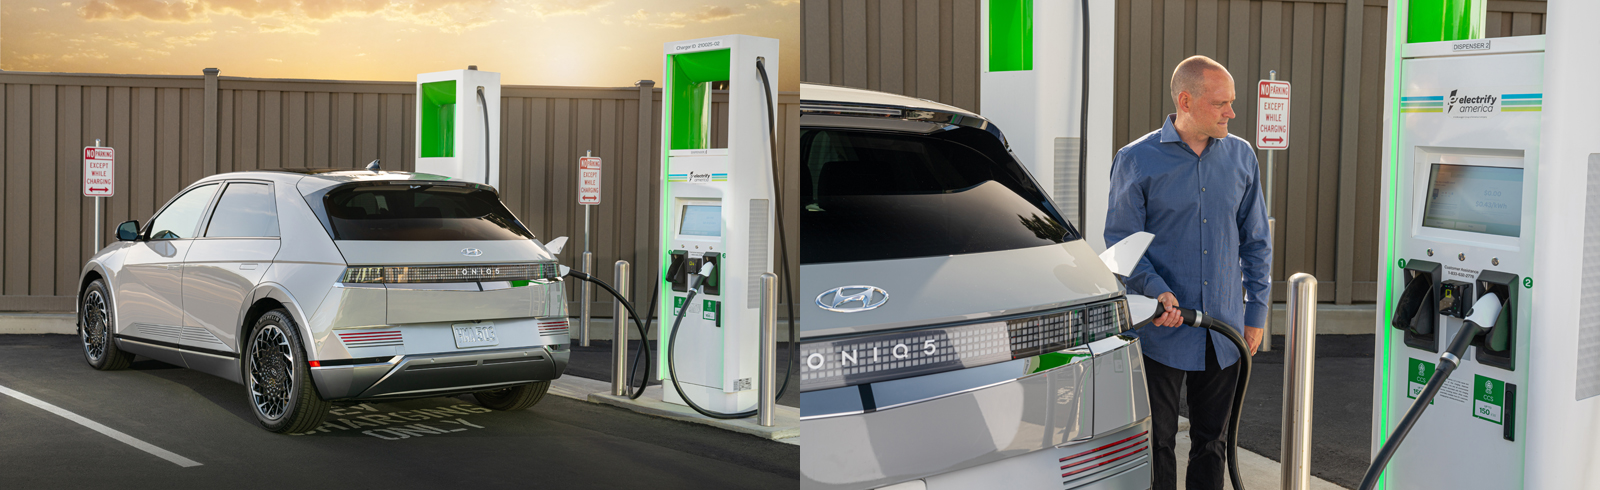 Electrify America and Hyundai announce 2 years of complimentary fast charging for IONIQ 5 drivers